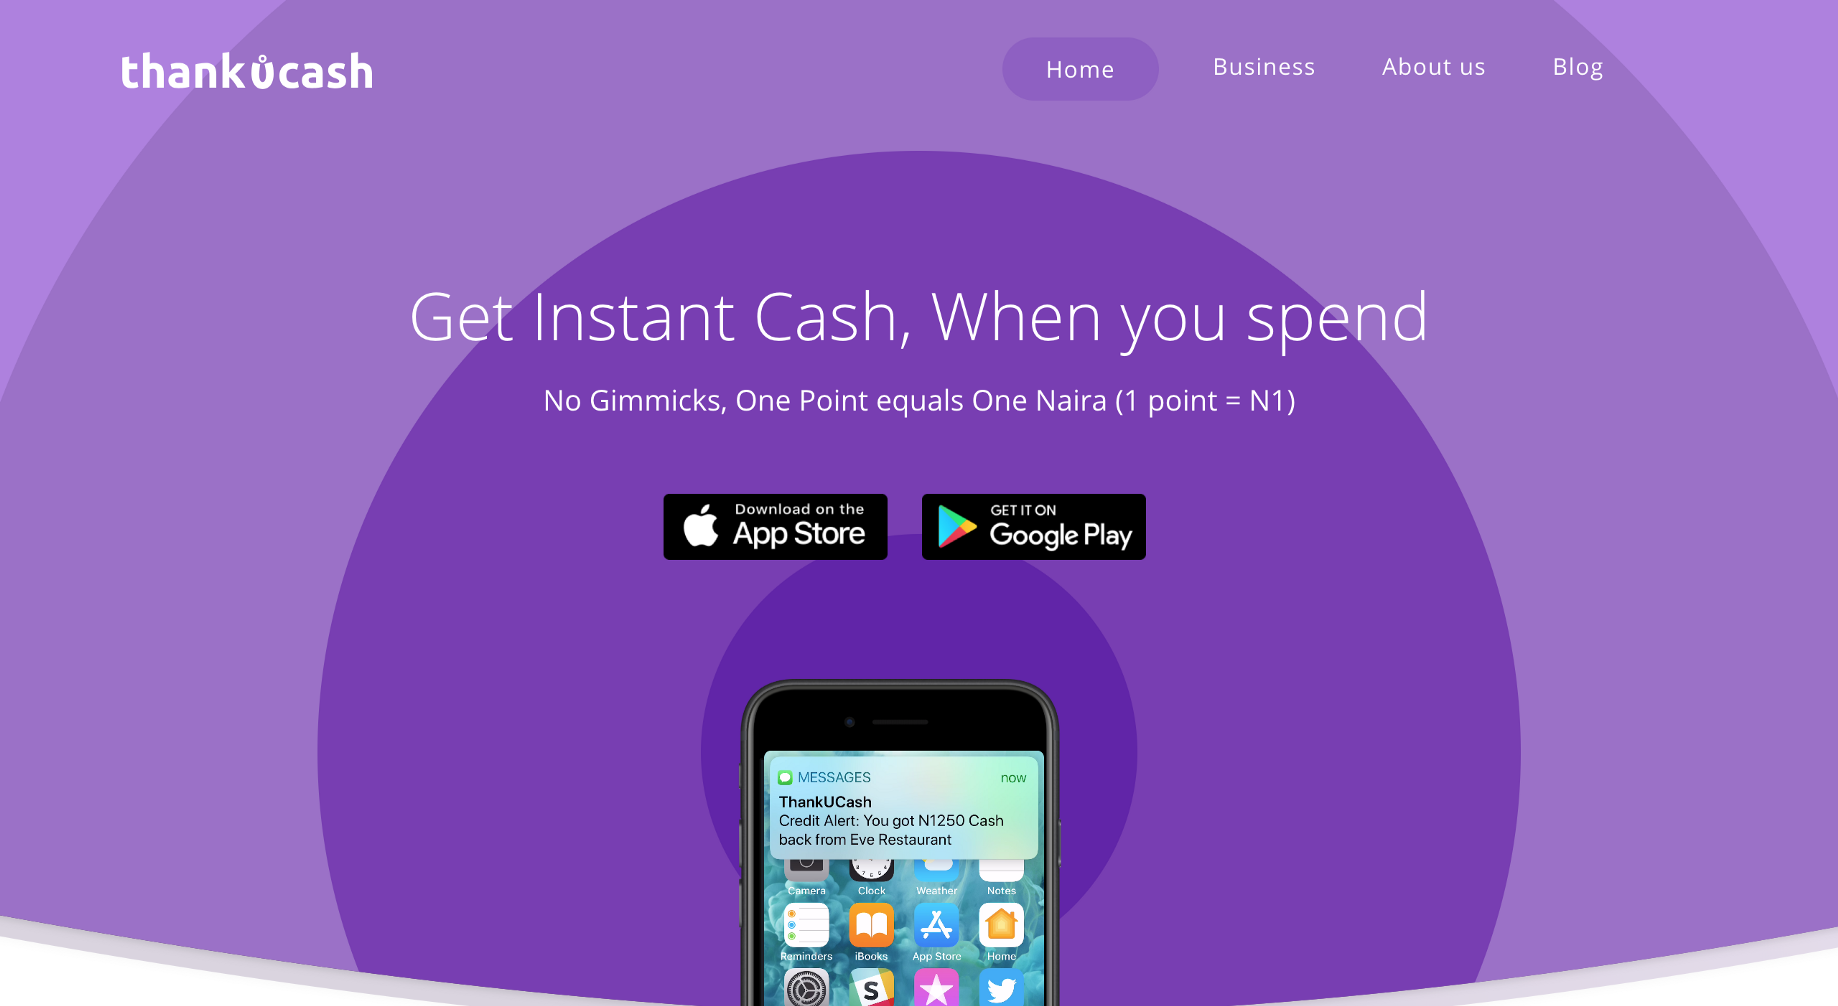 Get instant cash back when you spend with 'Thank U Cash'